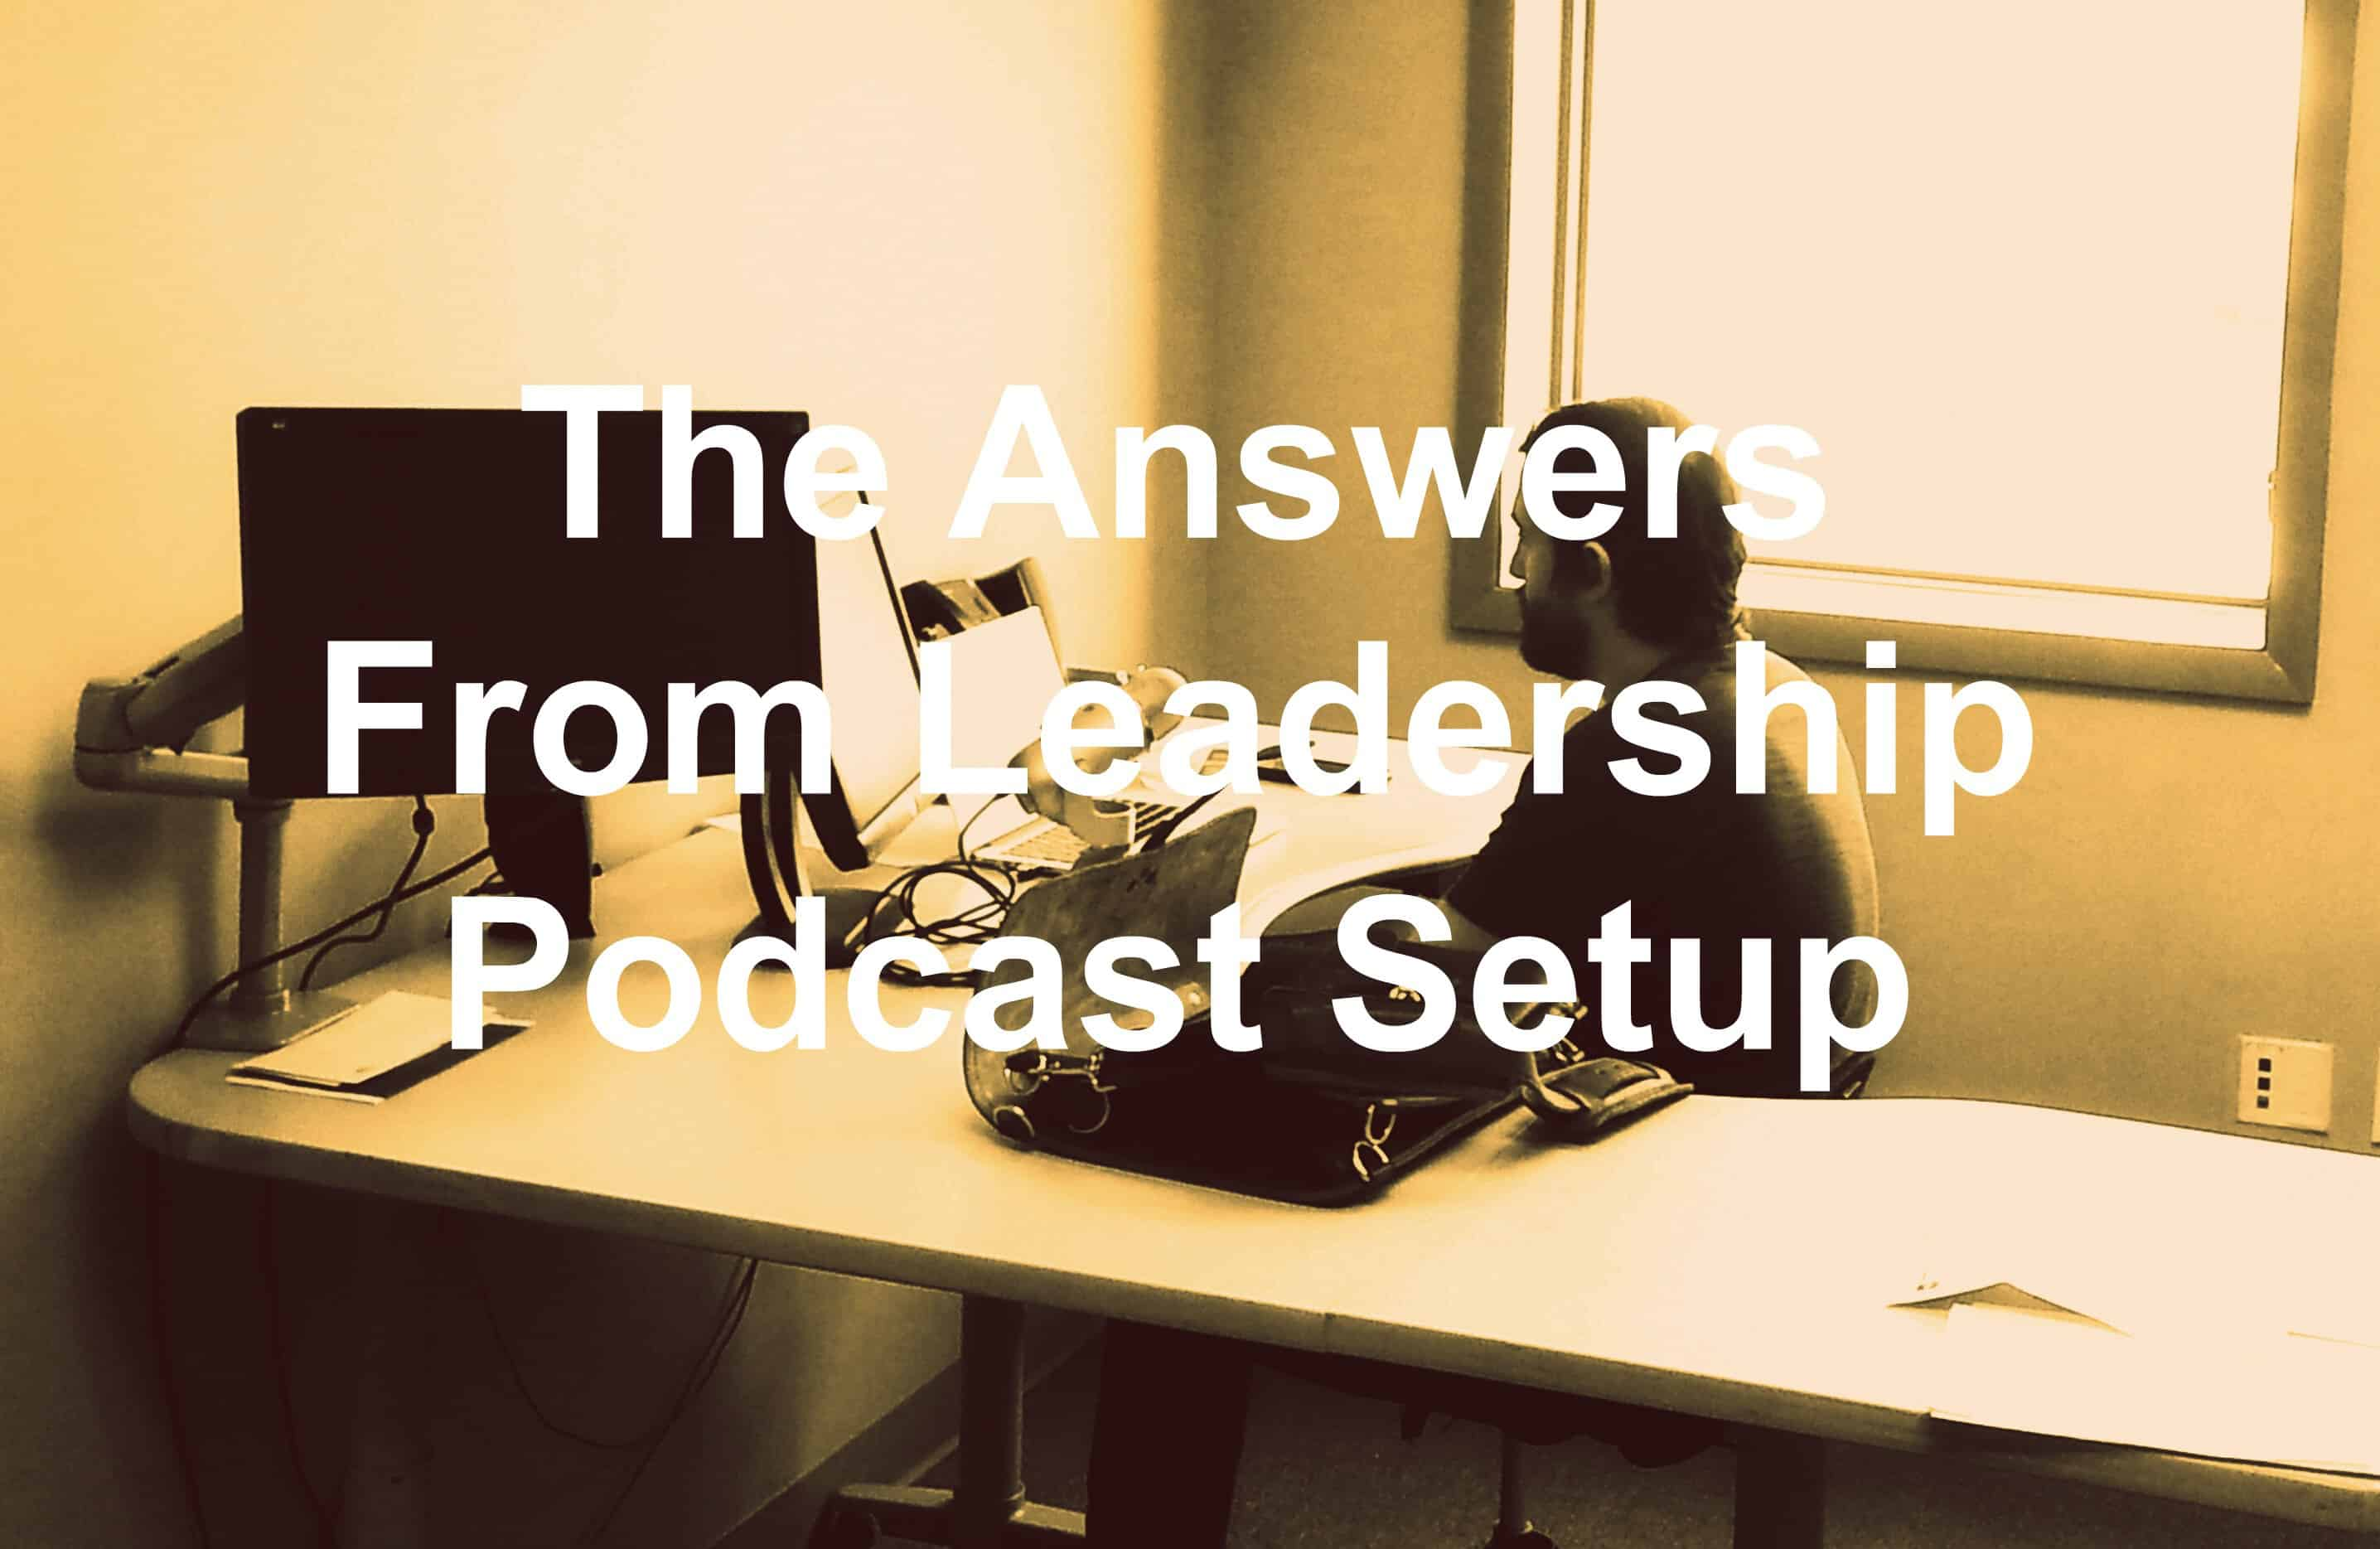 The best gear for podcasting the answers from leadership podcast